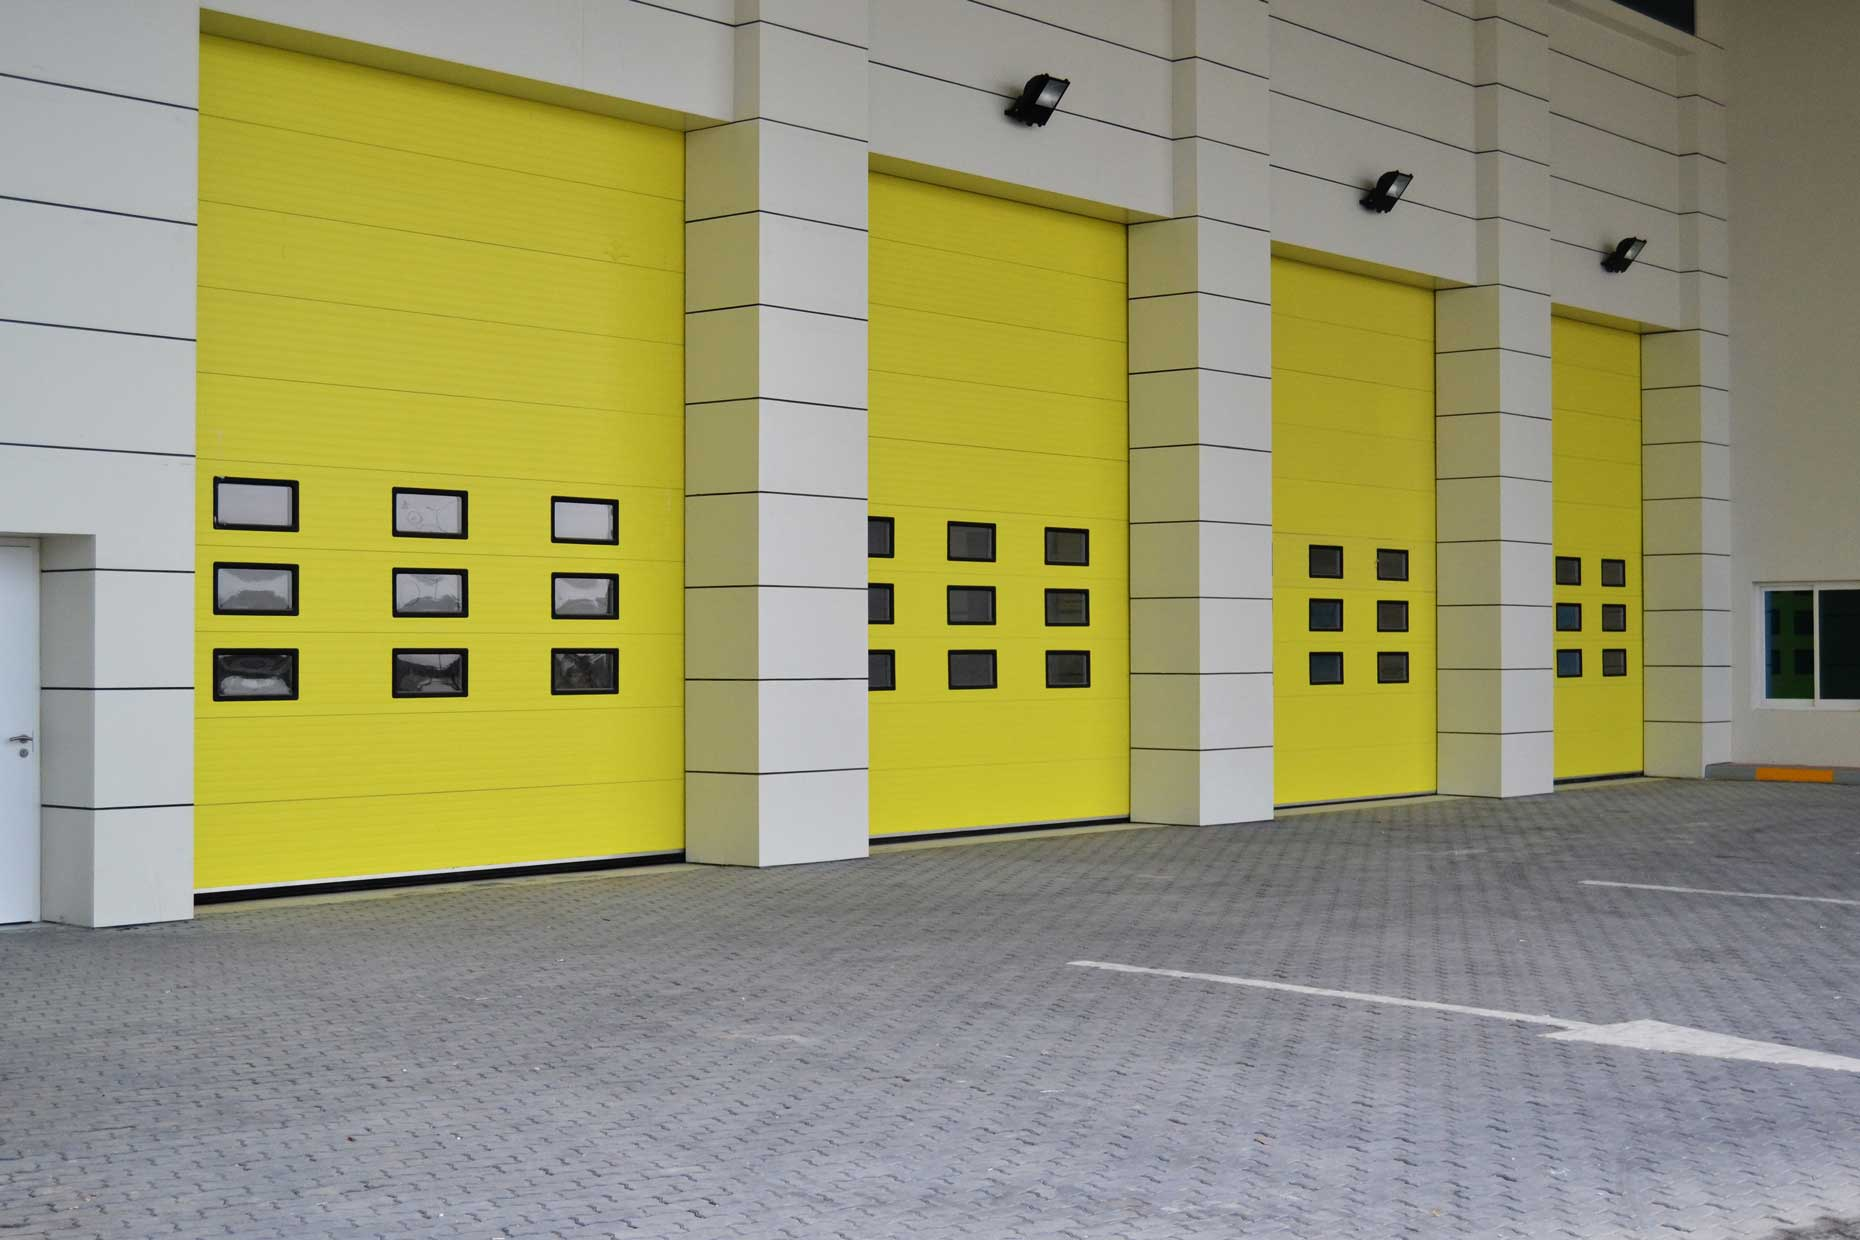 stratco dimension id doors products garage image industrial door home sectional improvement